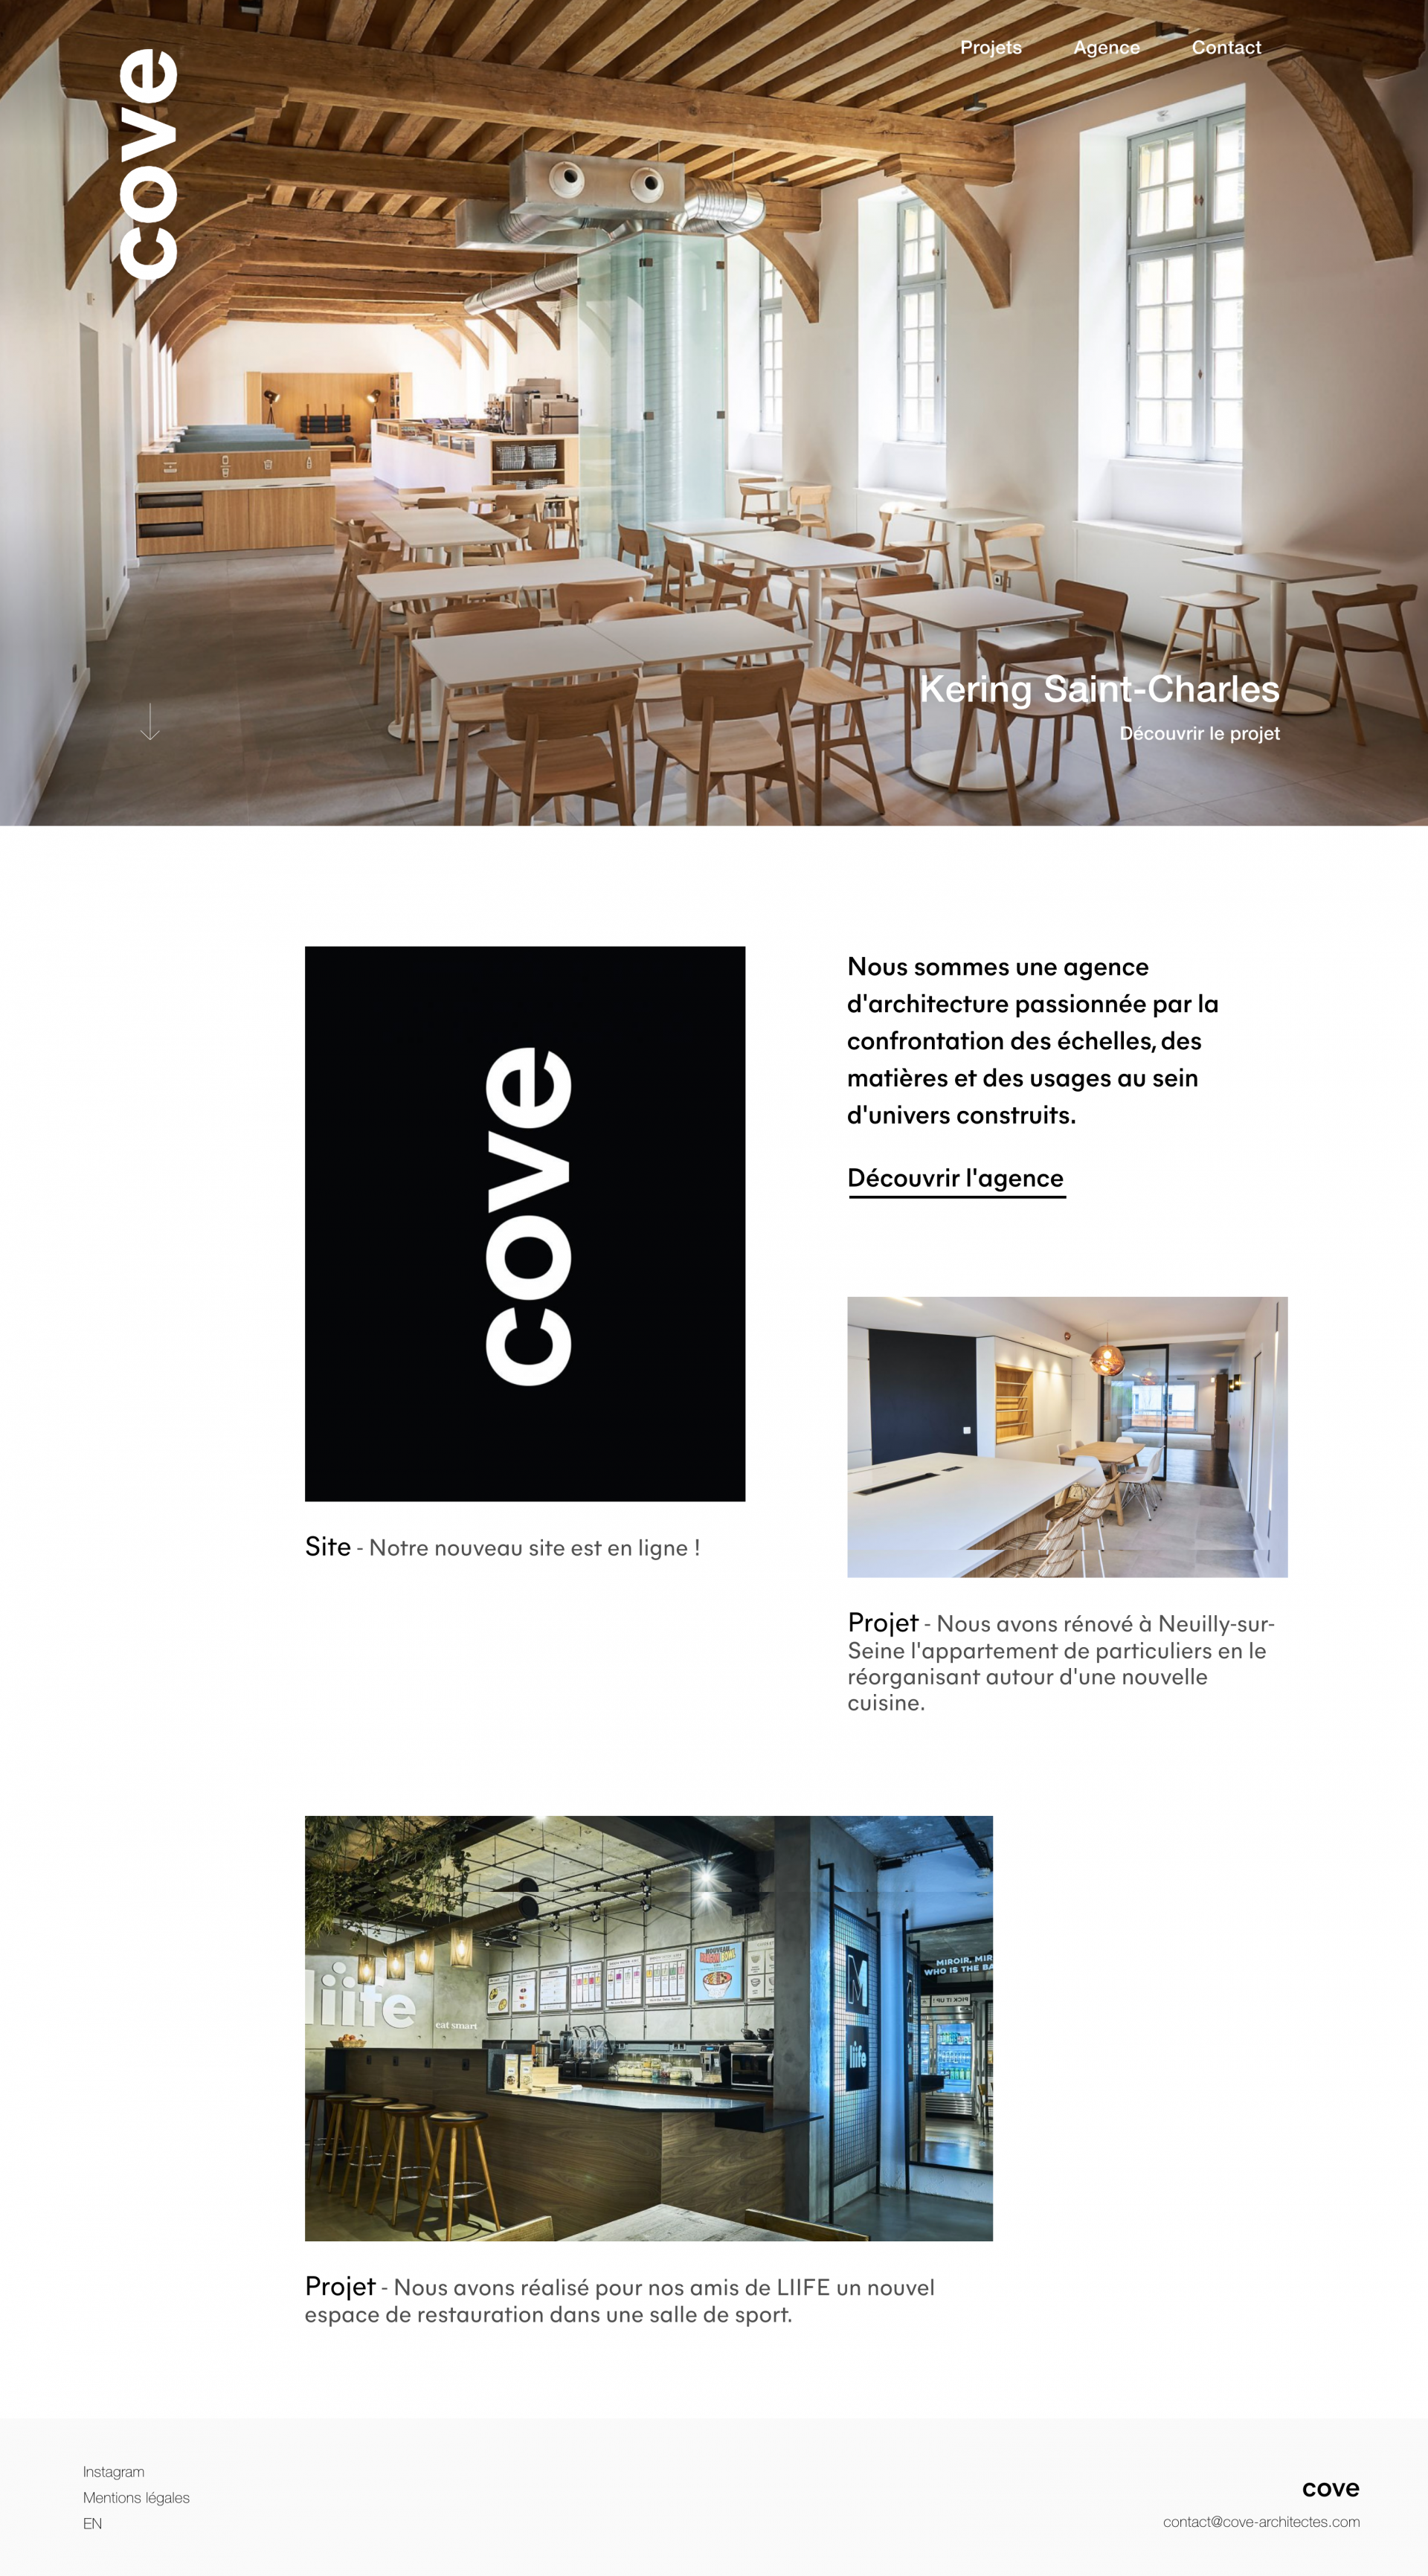 COVE architectes